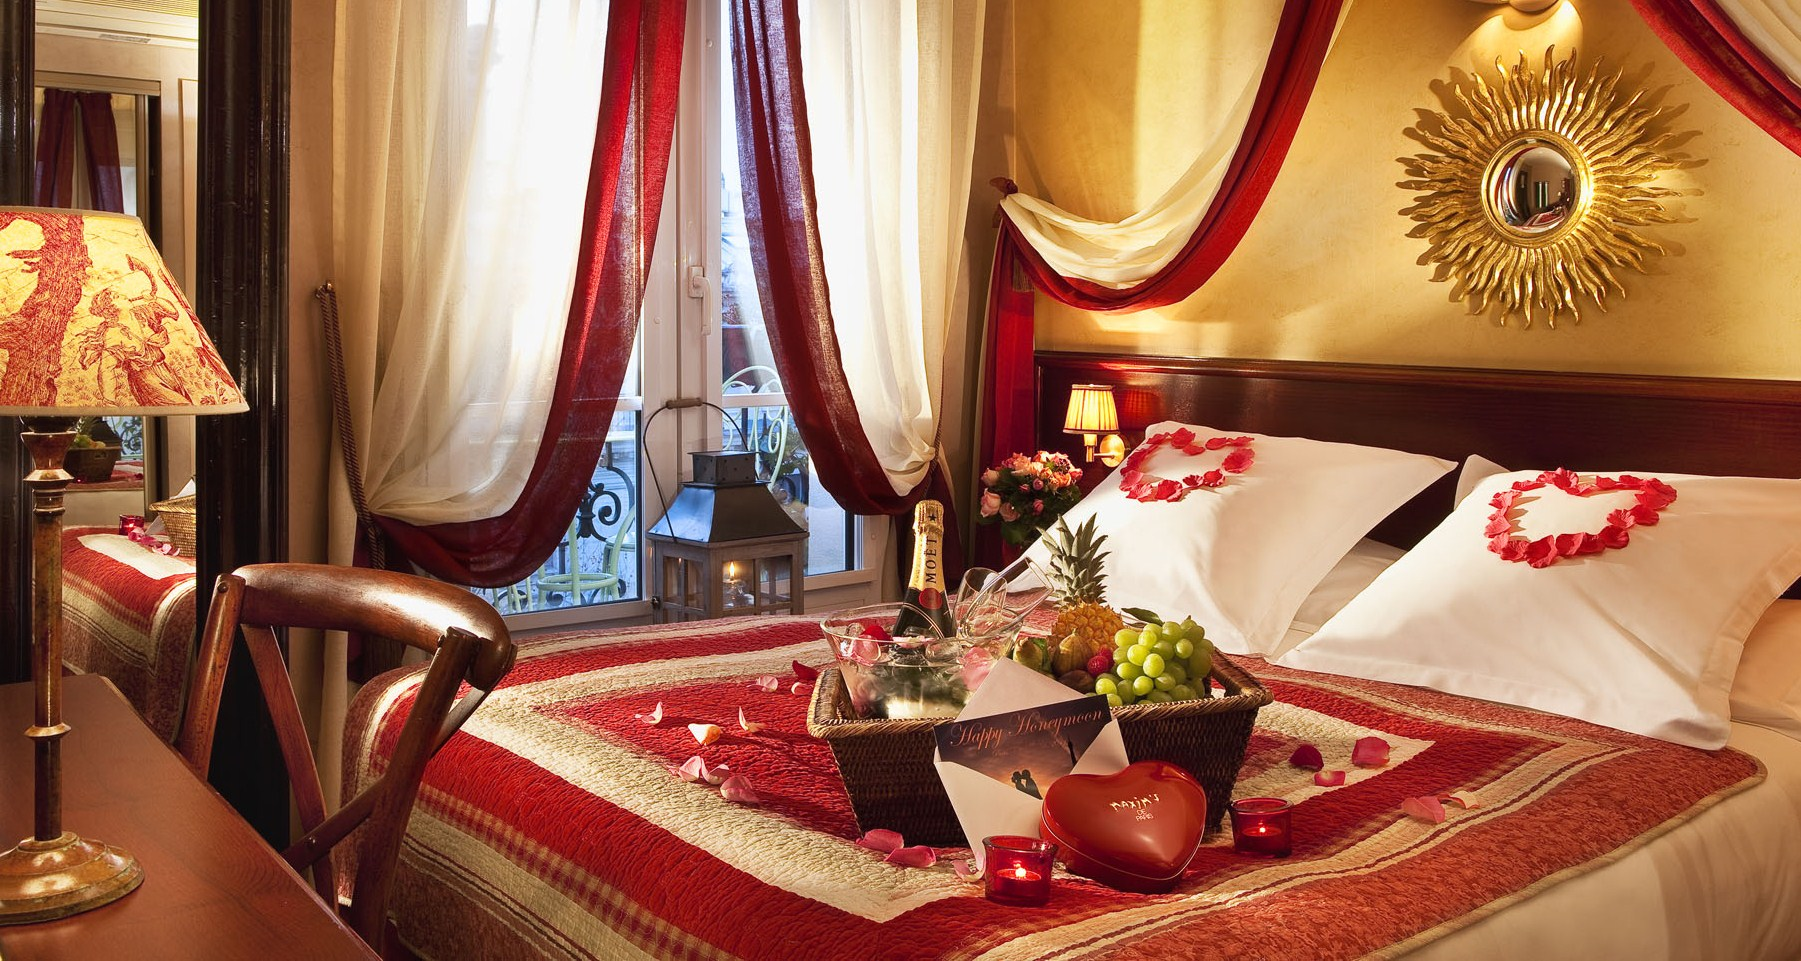 Most Romantic Hotels in the World Part 2